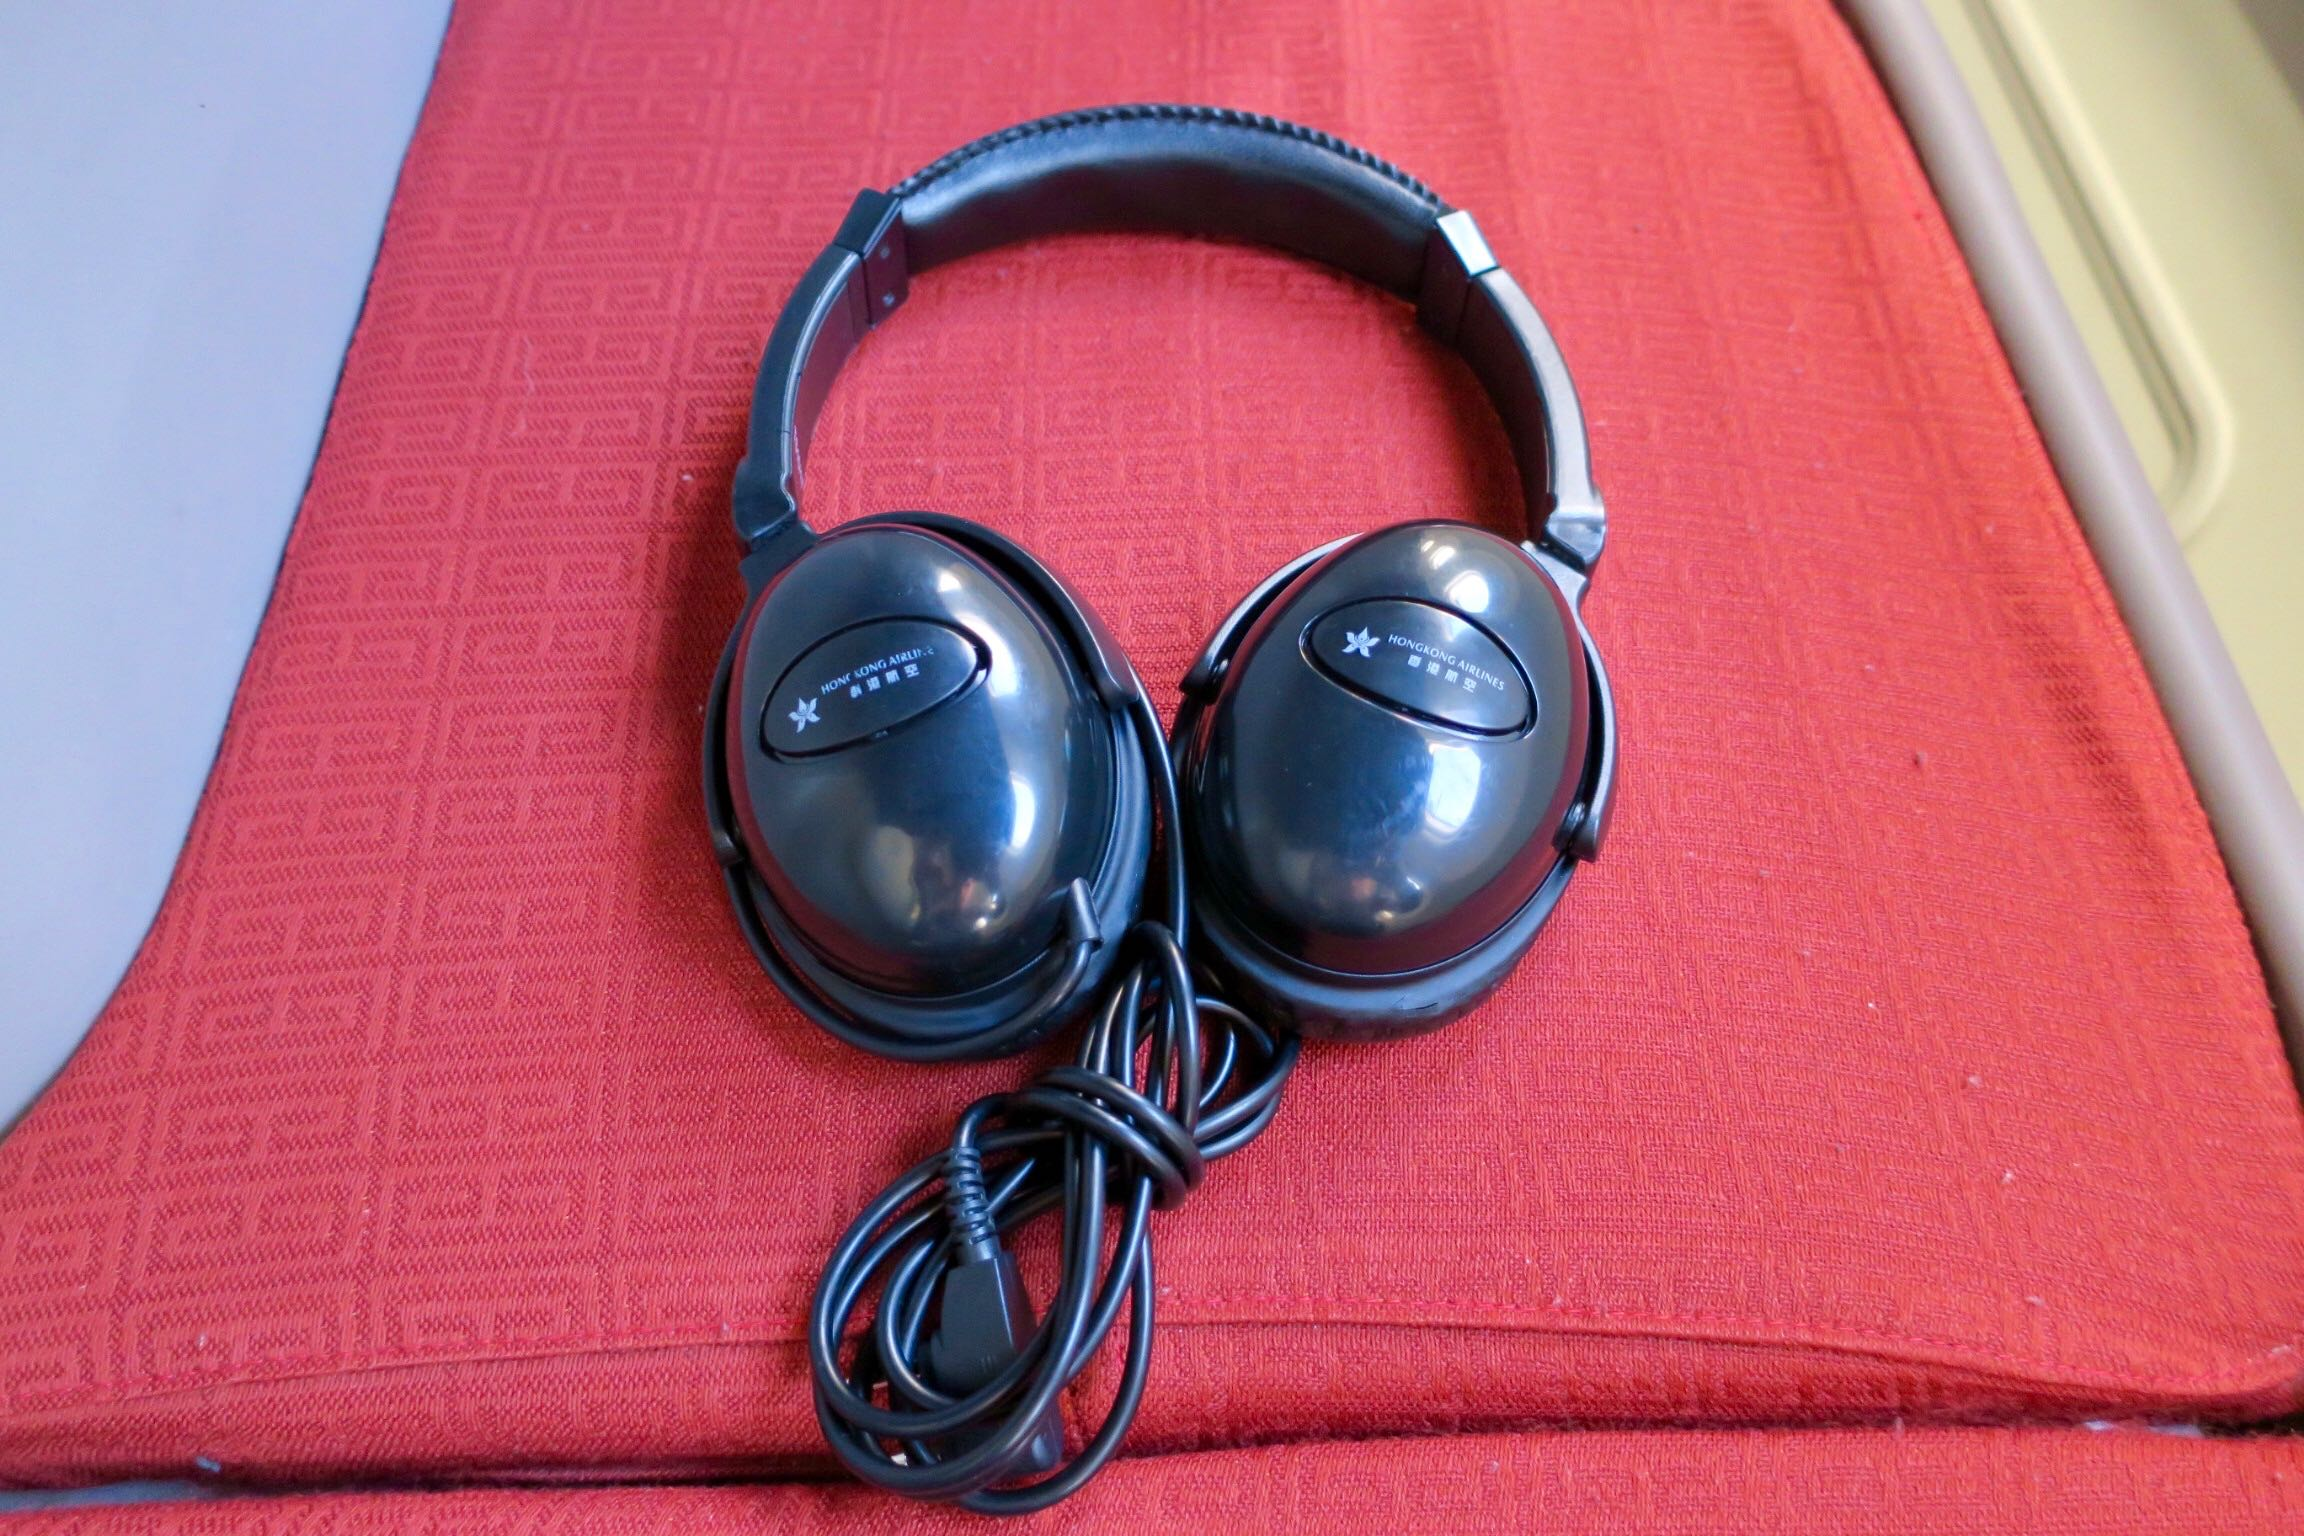 Hong Kong Airlines headphones